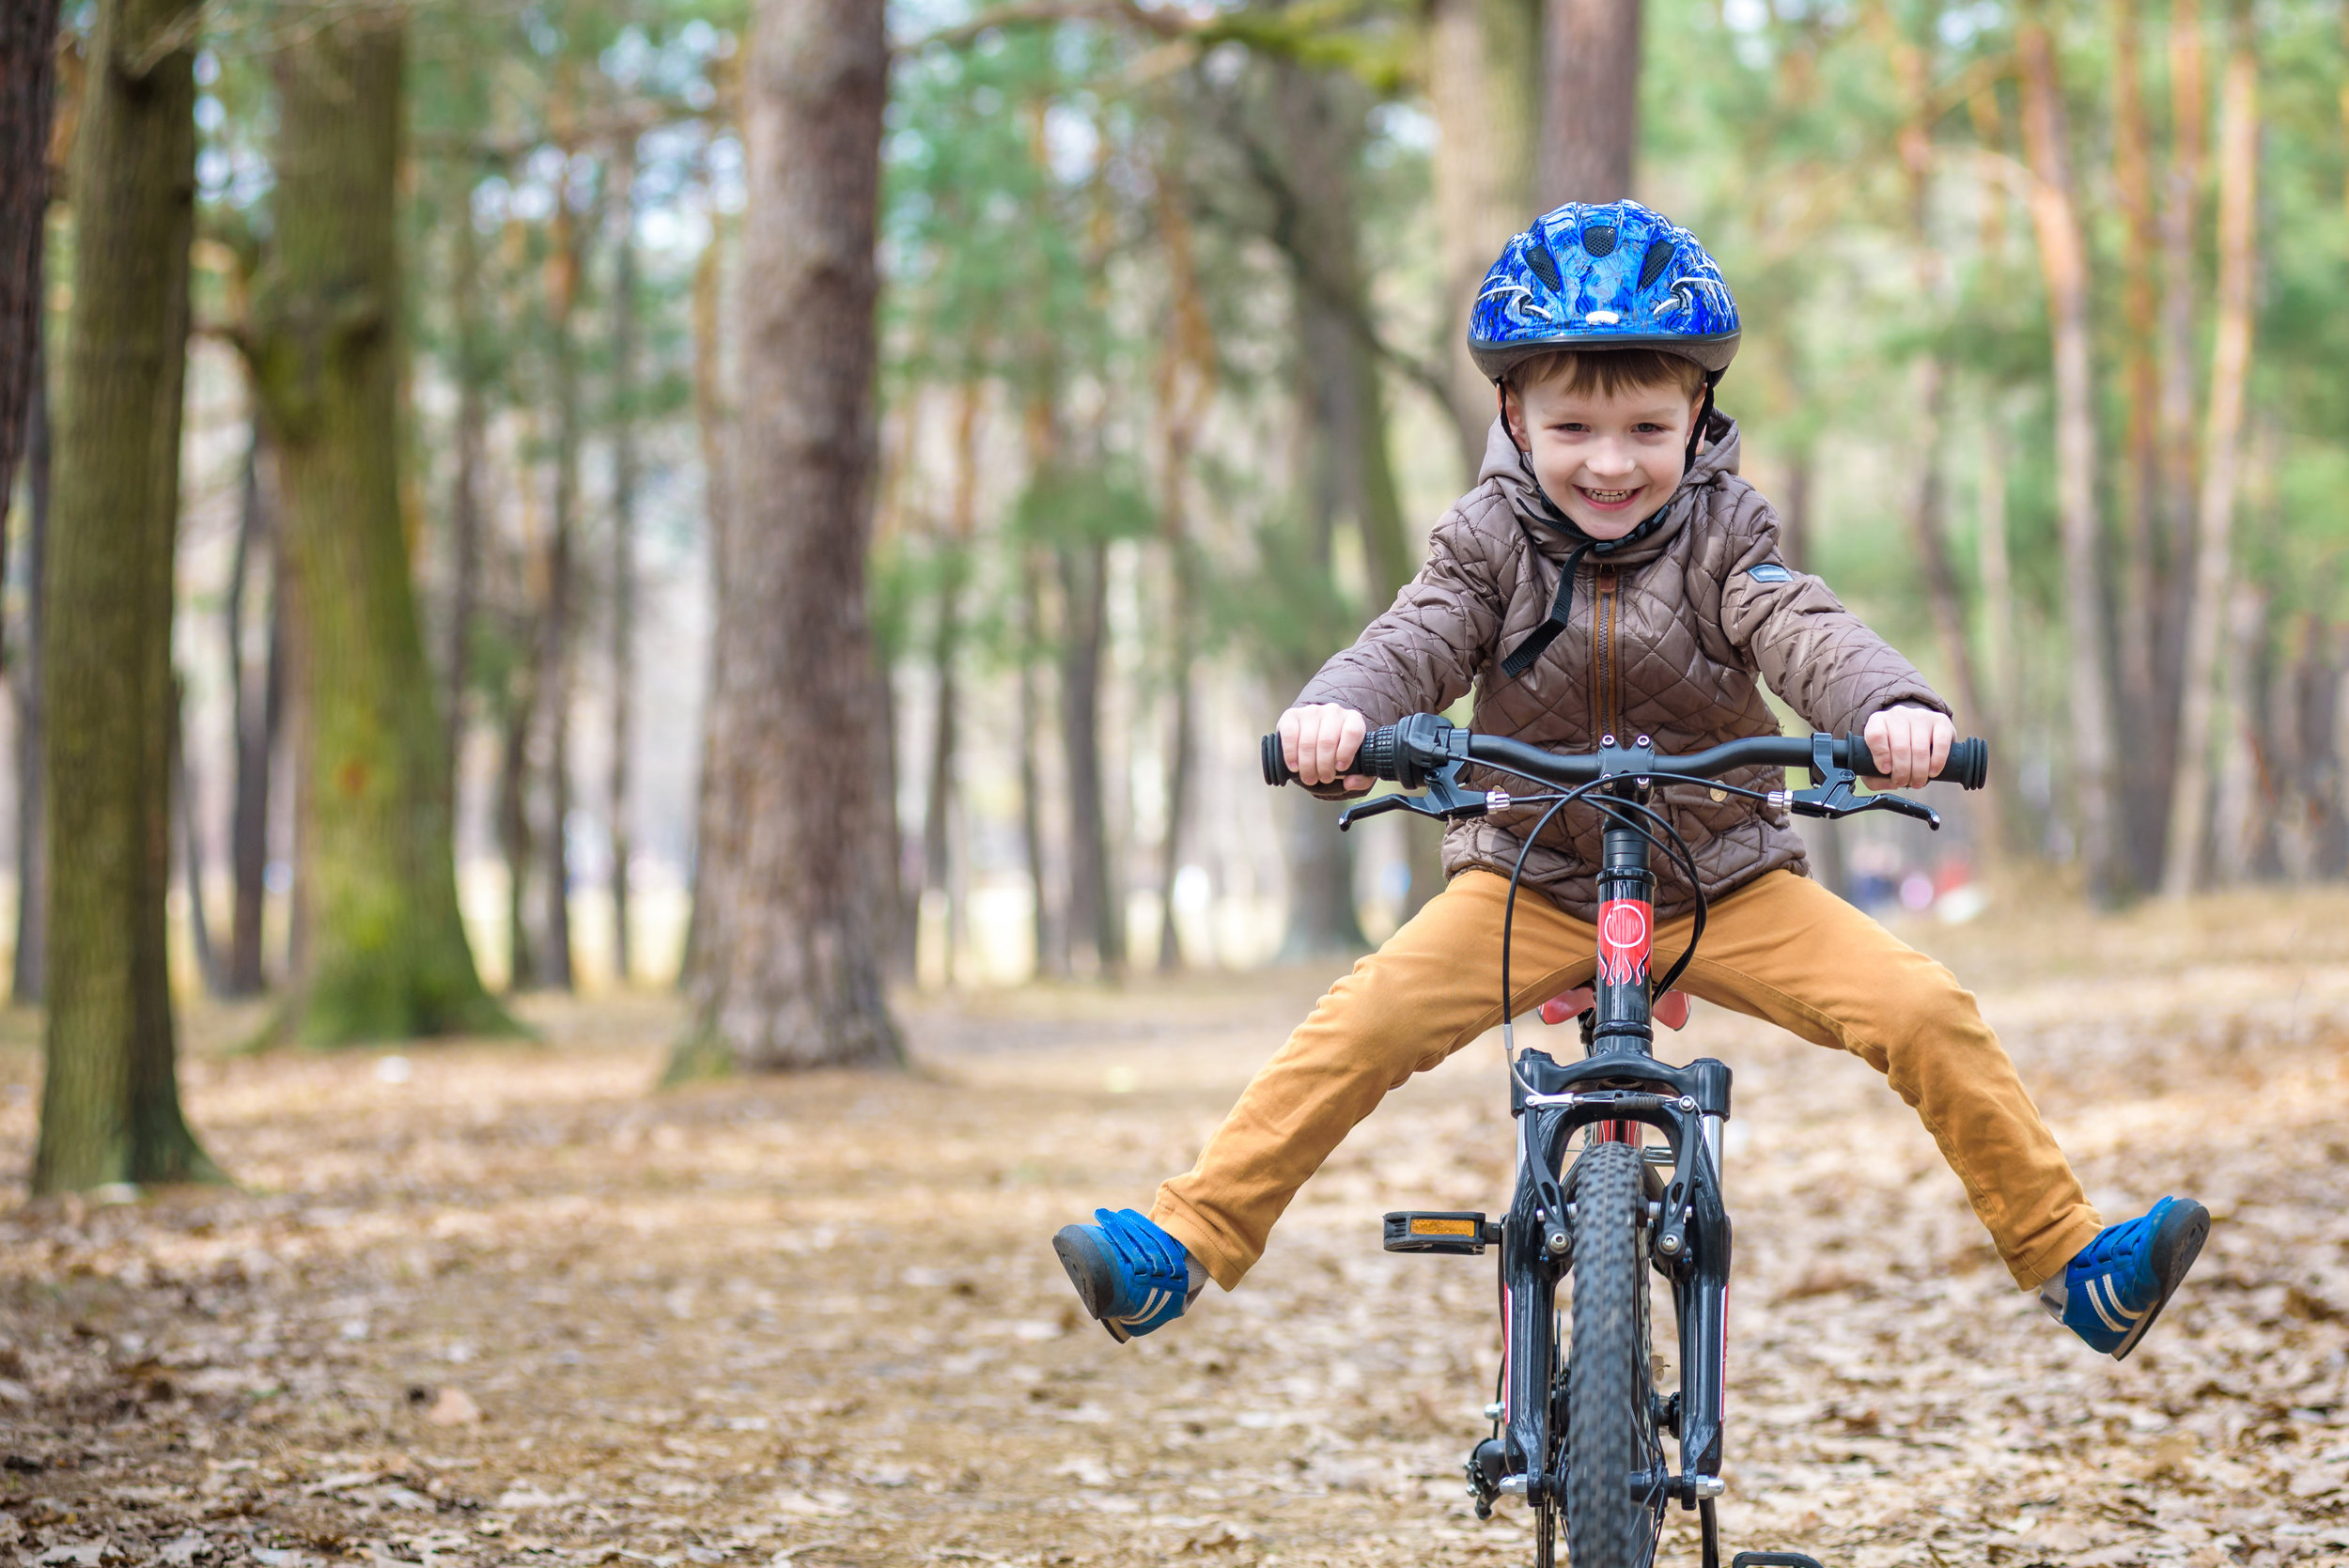 dear Bikes for Kids, -